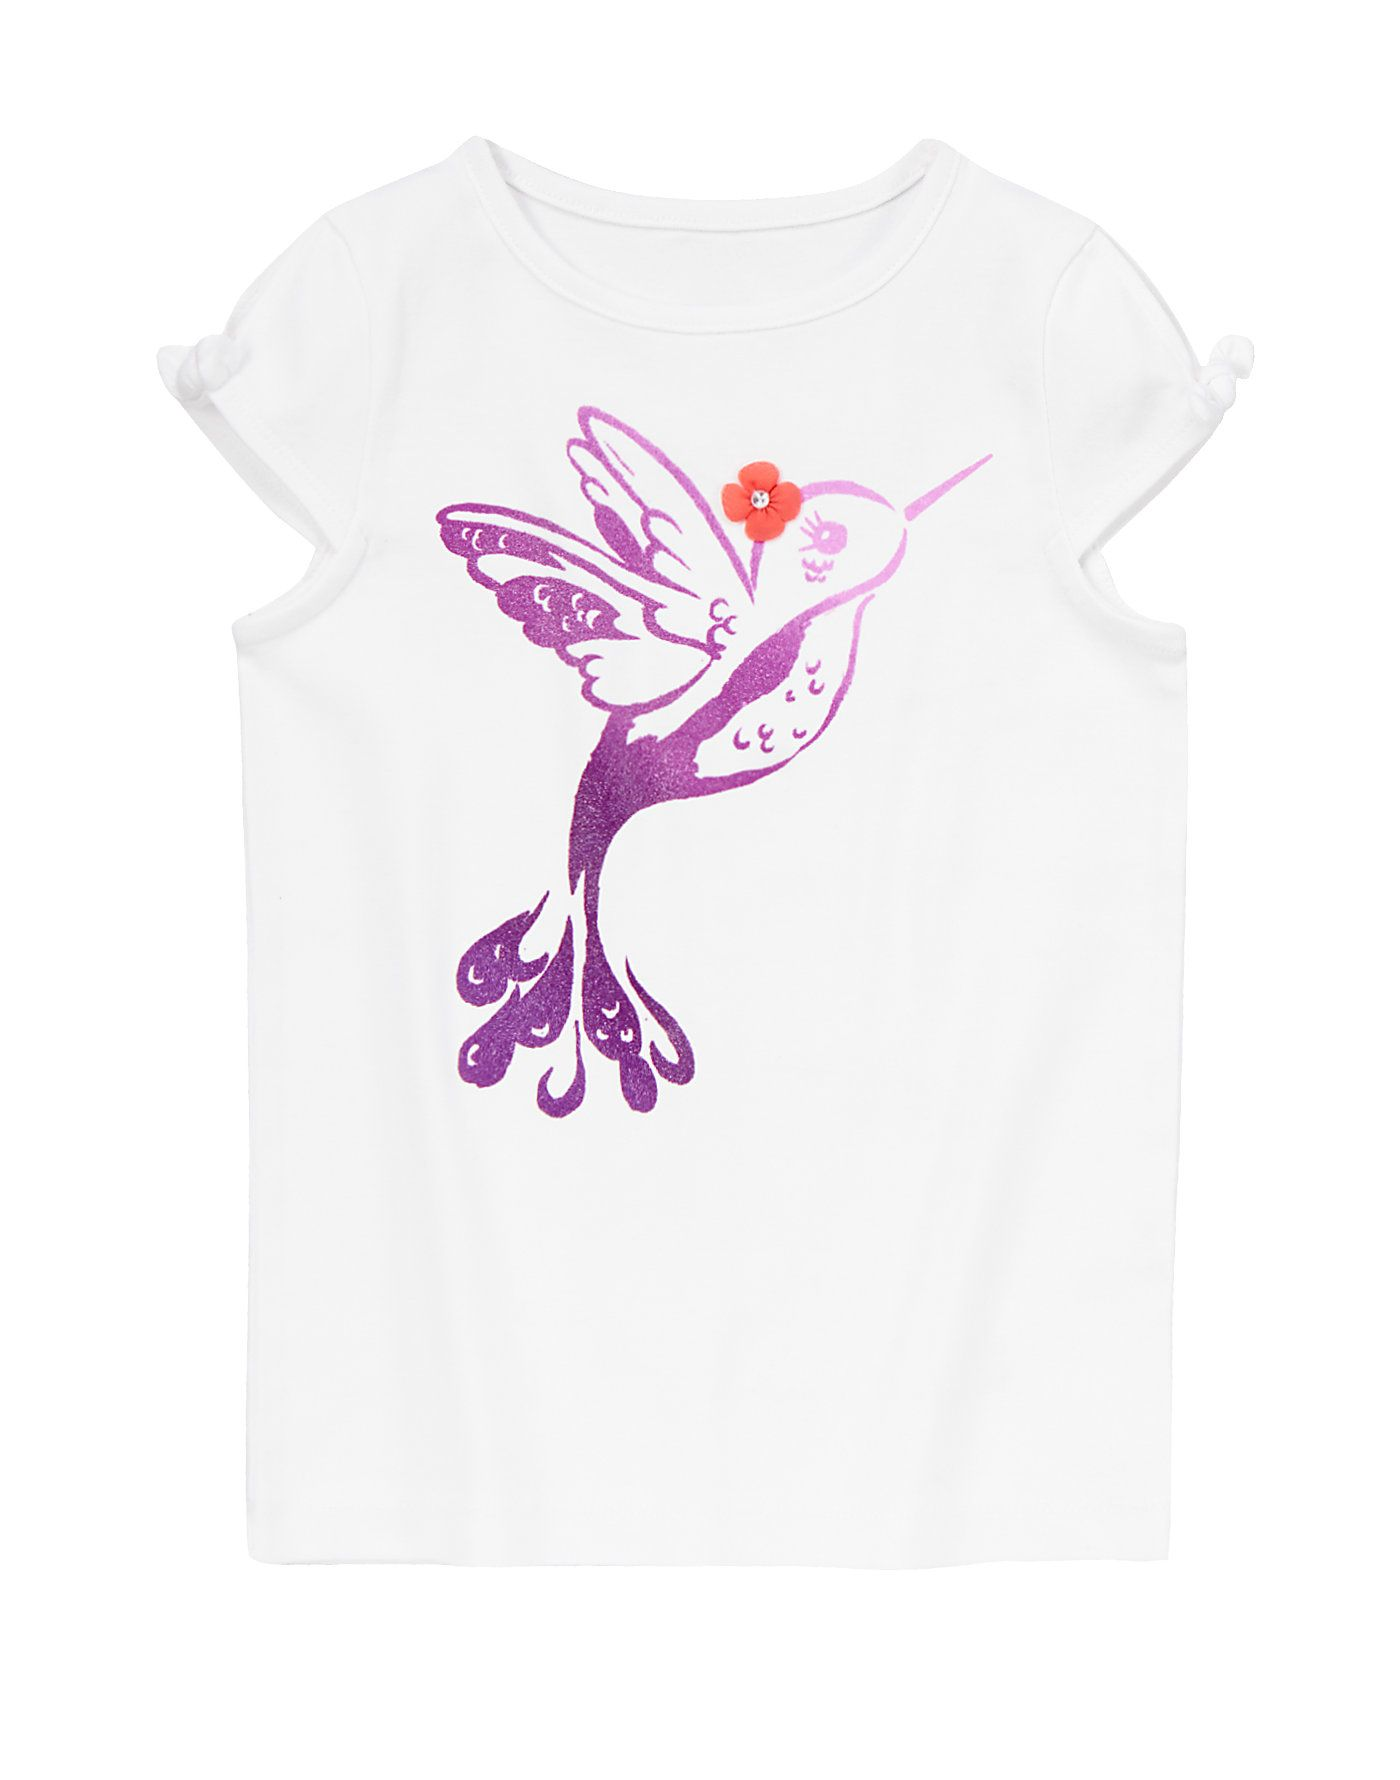 Cute style takes flight with our sparkly tee hummingbird design is